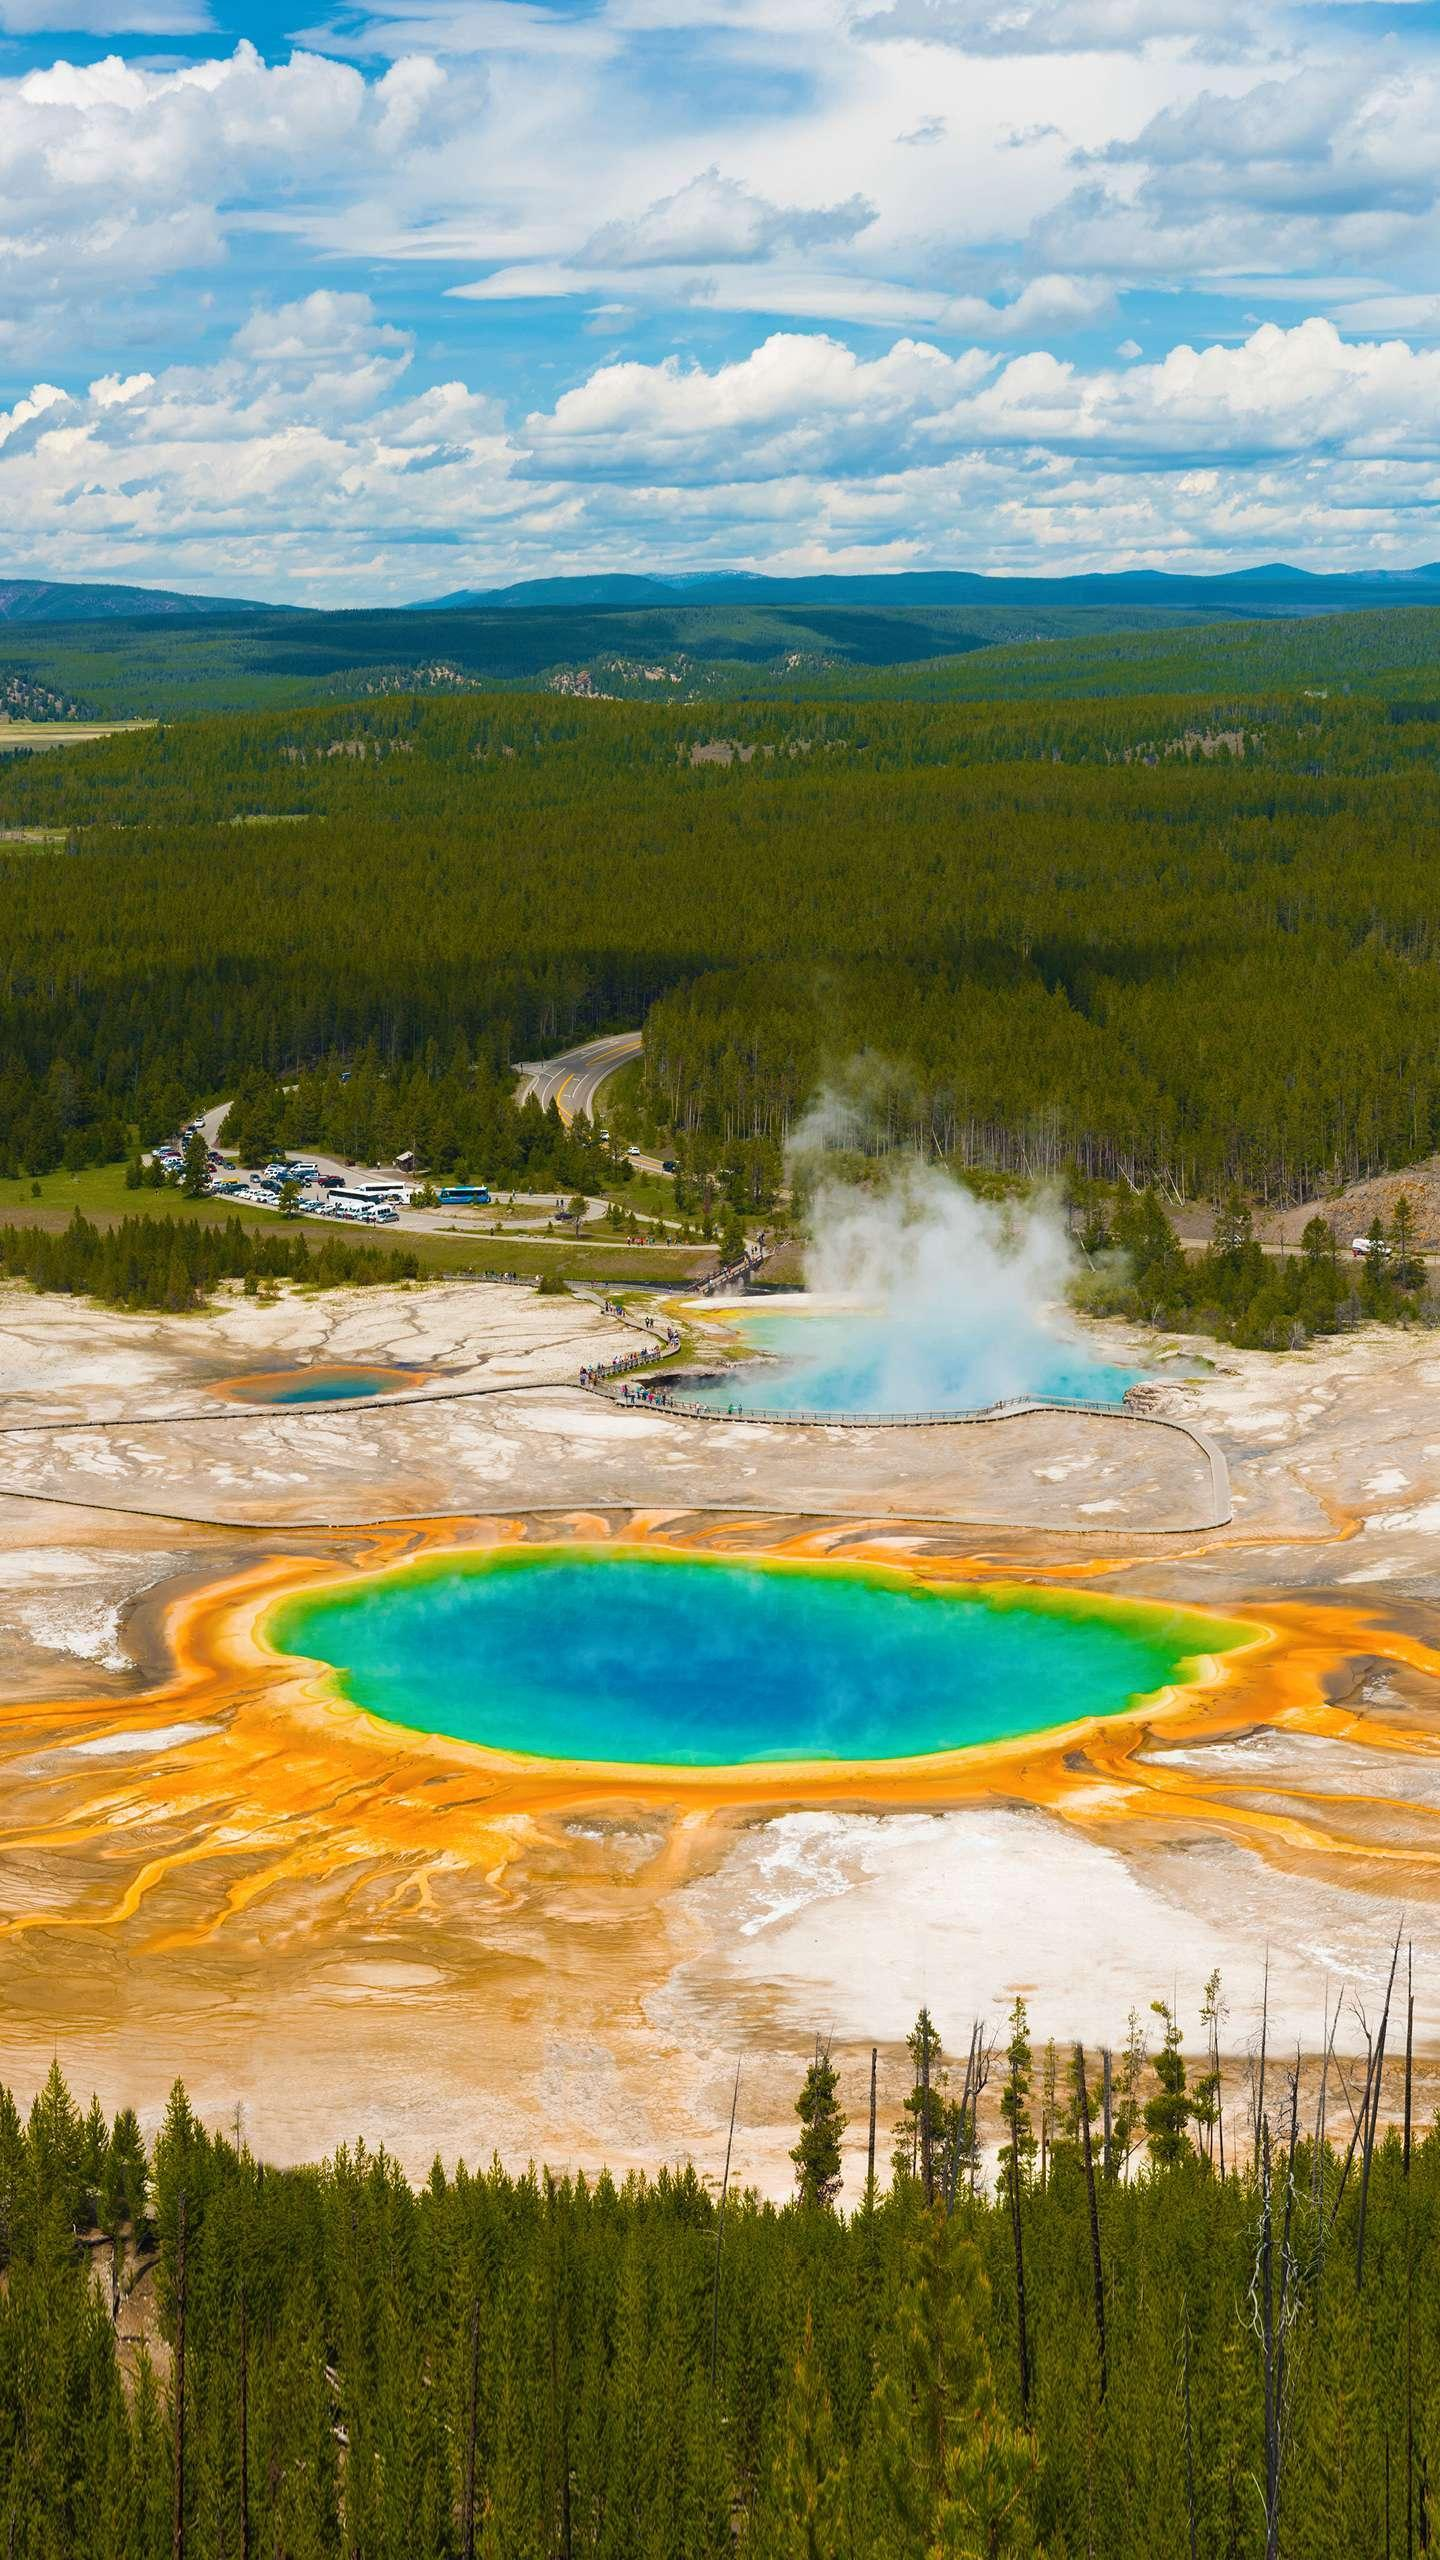 The most amazing park in the world. Because of the existence of volcanoes, there are a large number of hot springs and geysers, which constitute the most shocking part of Yellowstone.